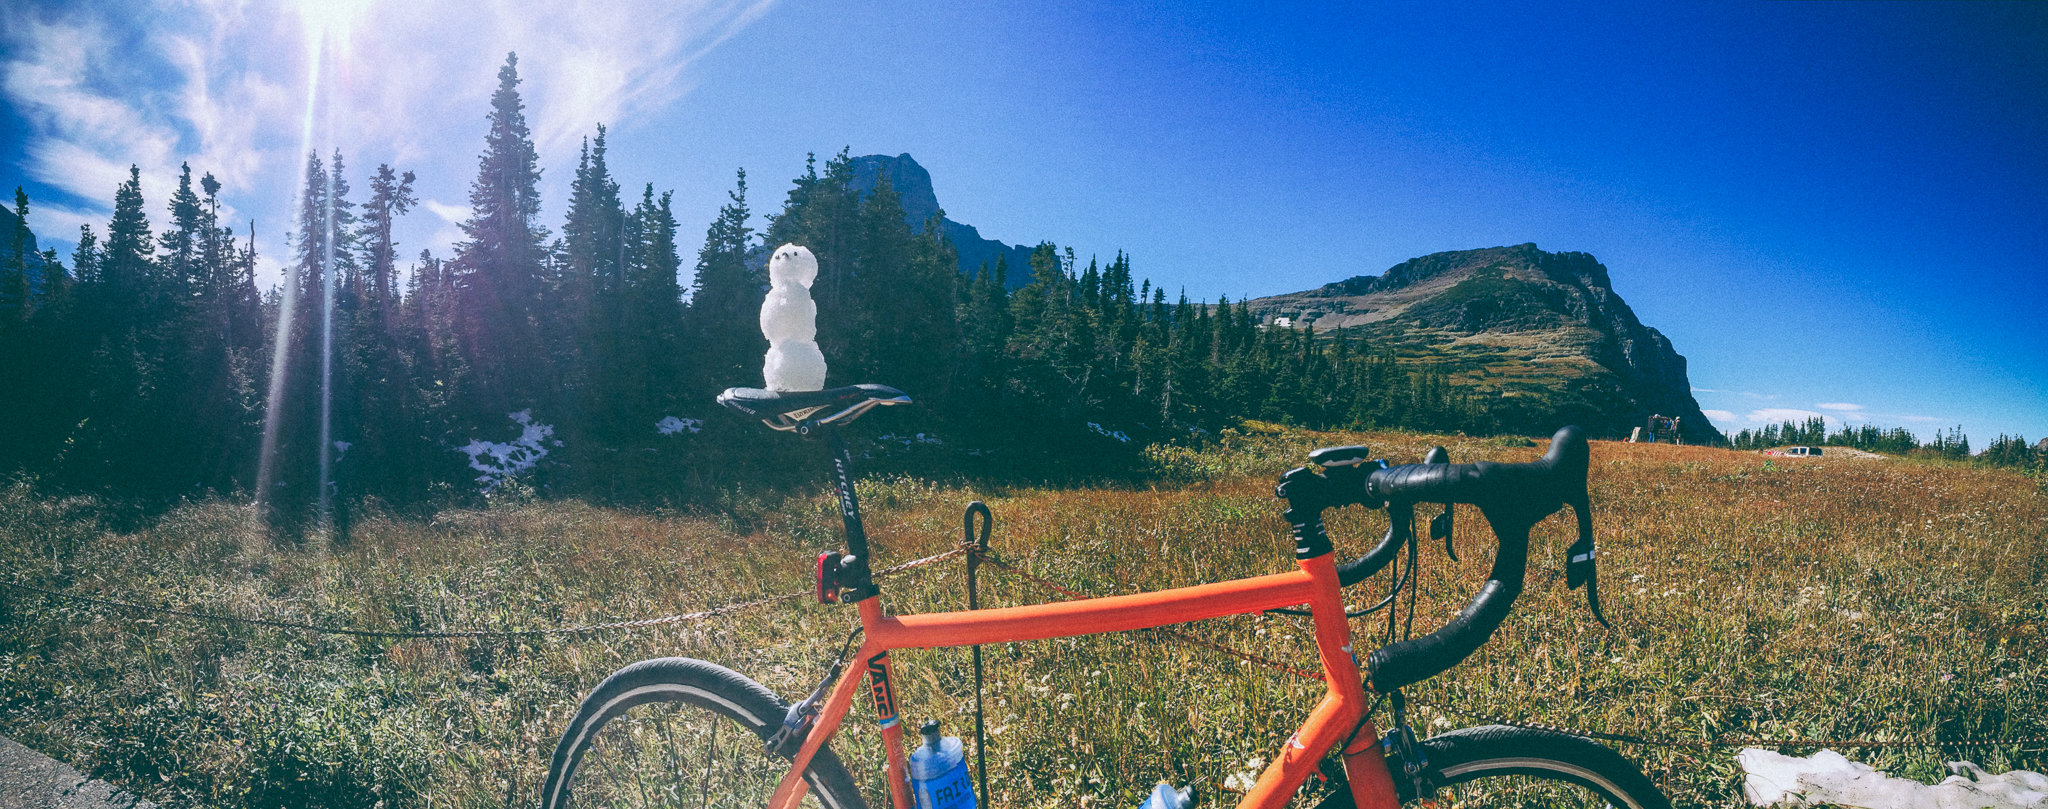 glacier-national-park-cycling-fairdale-2822